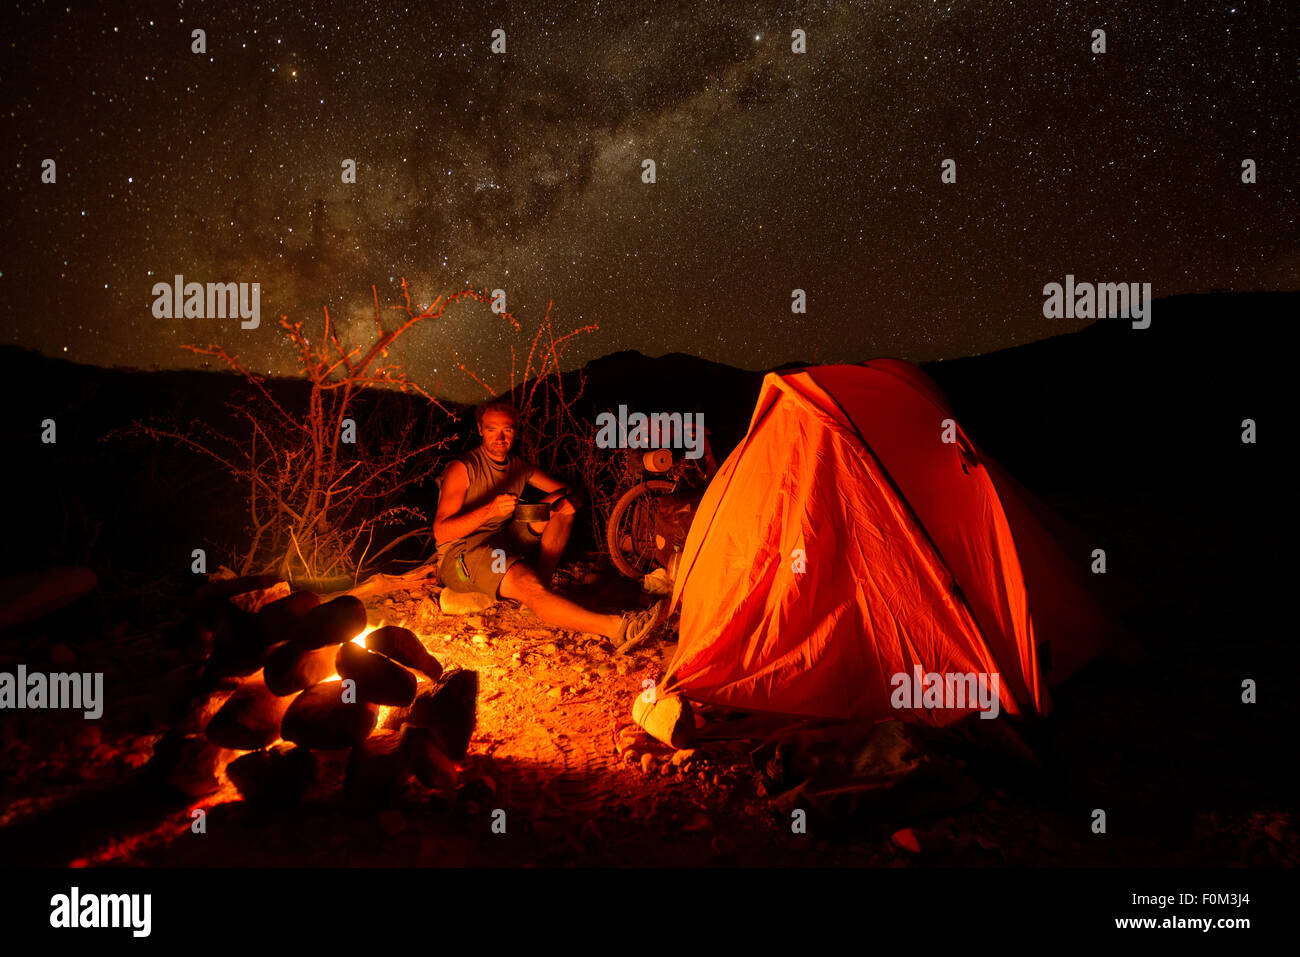 Camping in the wild, Namibia, Africa - Stock Image